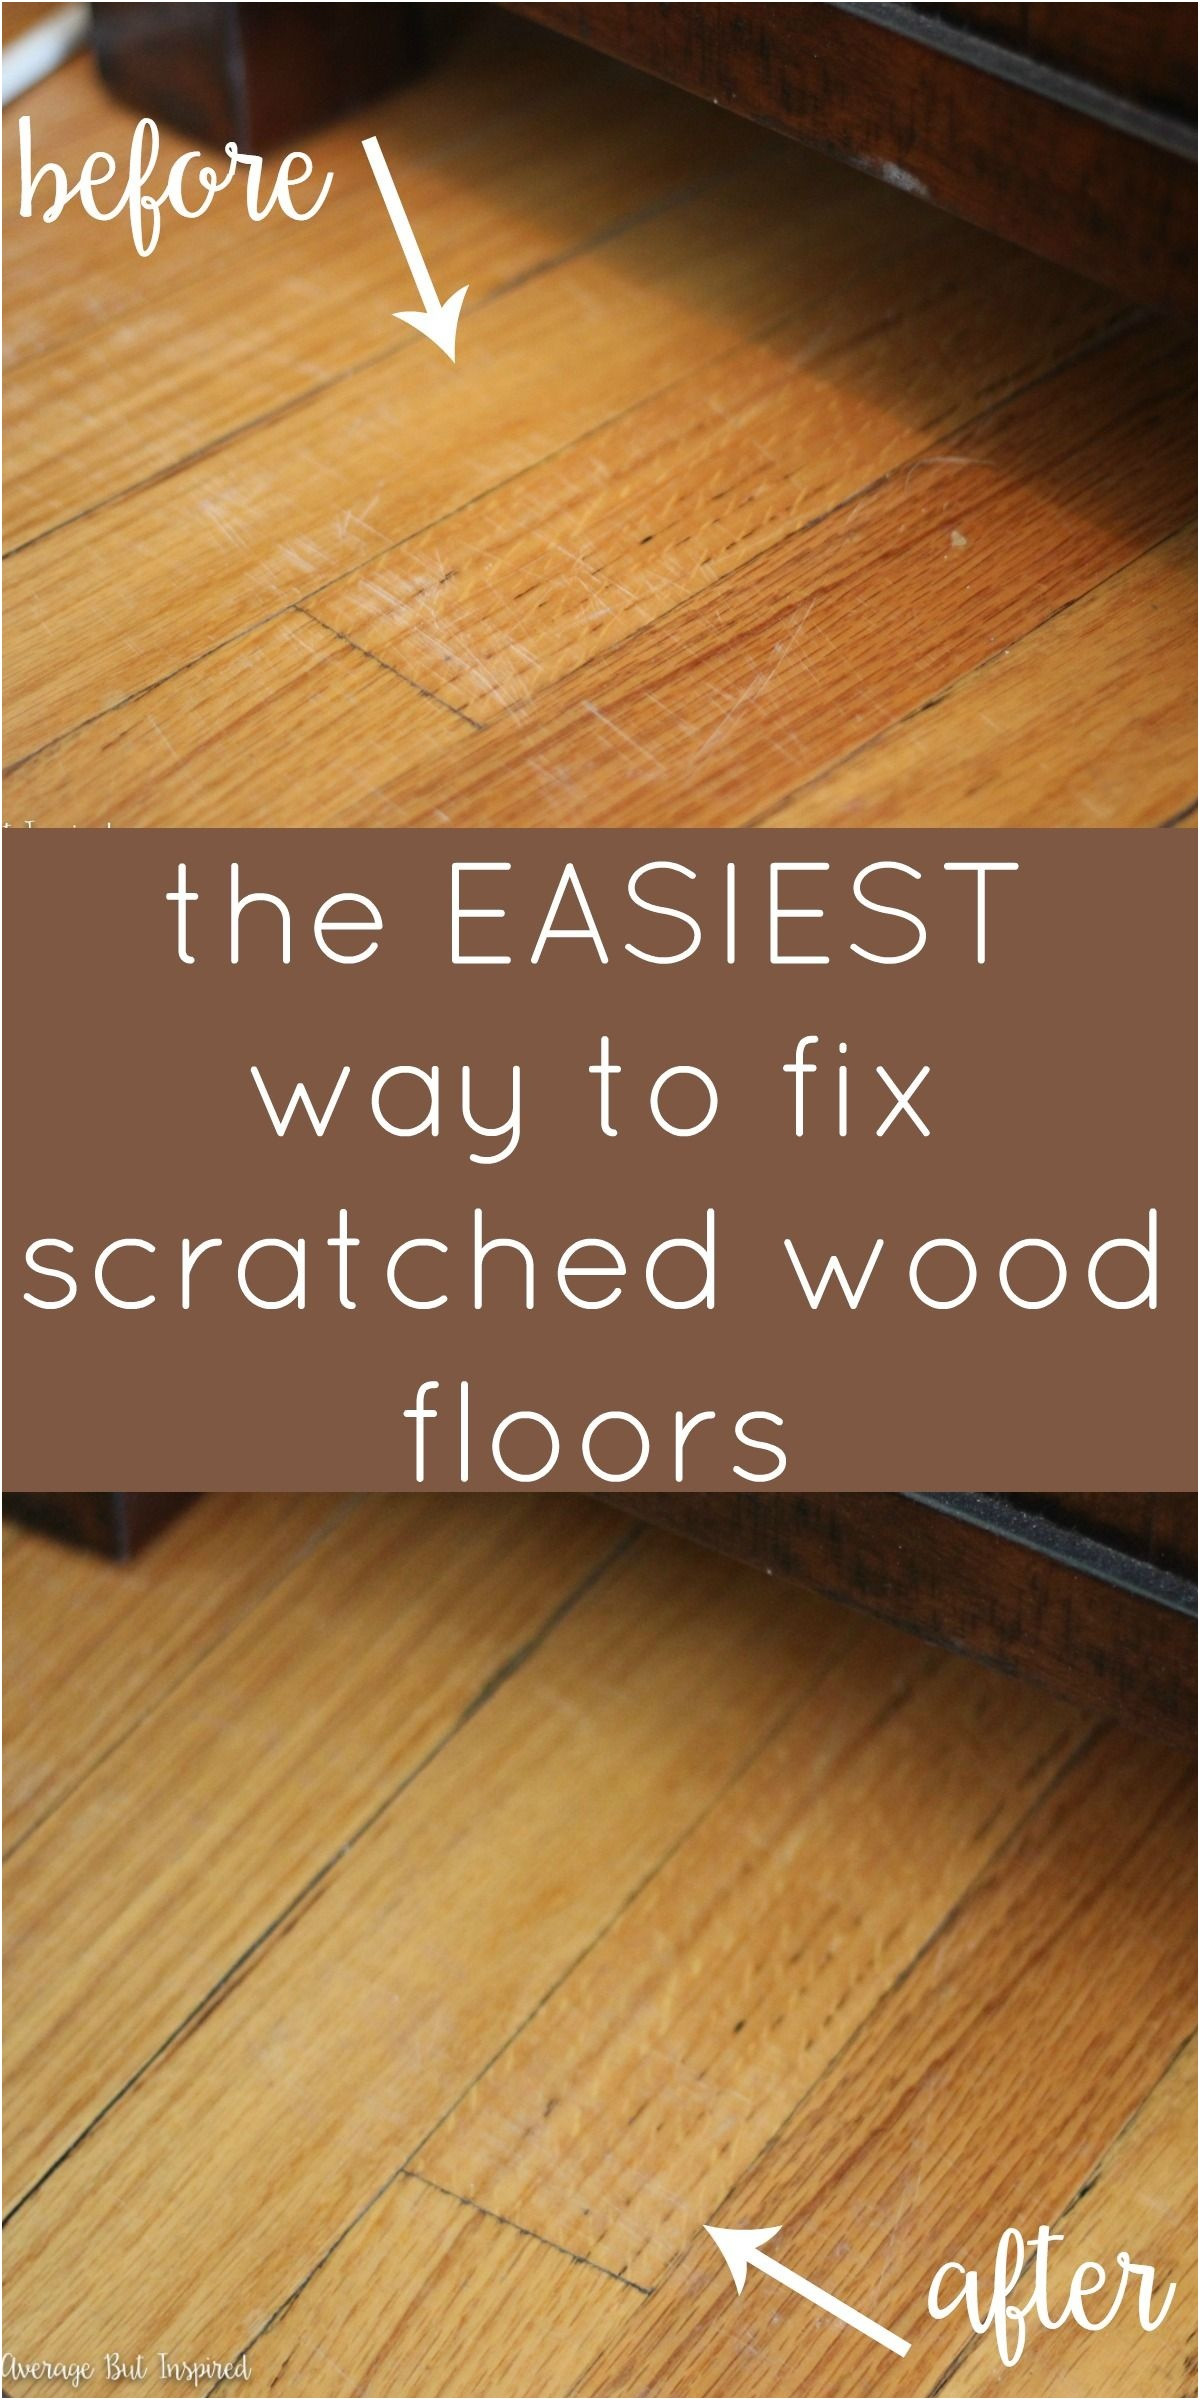 hardwood flooring cost of average cost of new flooring best of how to fix scratched hardwood for average cost of new flooring best of how to fix scratched hardwood floors in no time